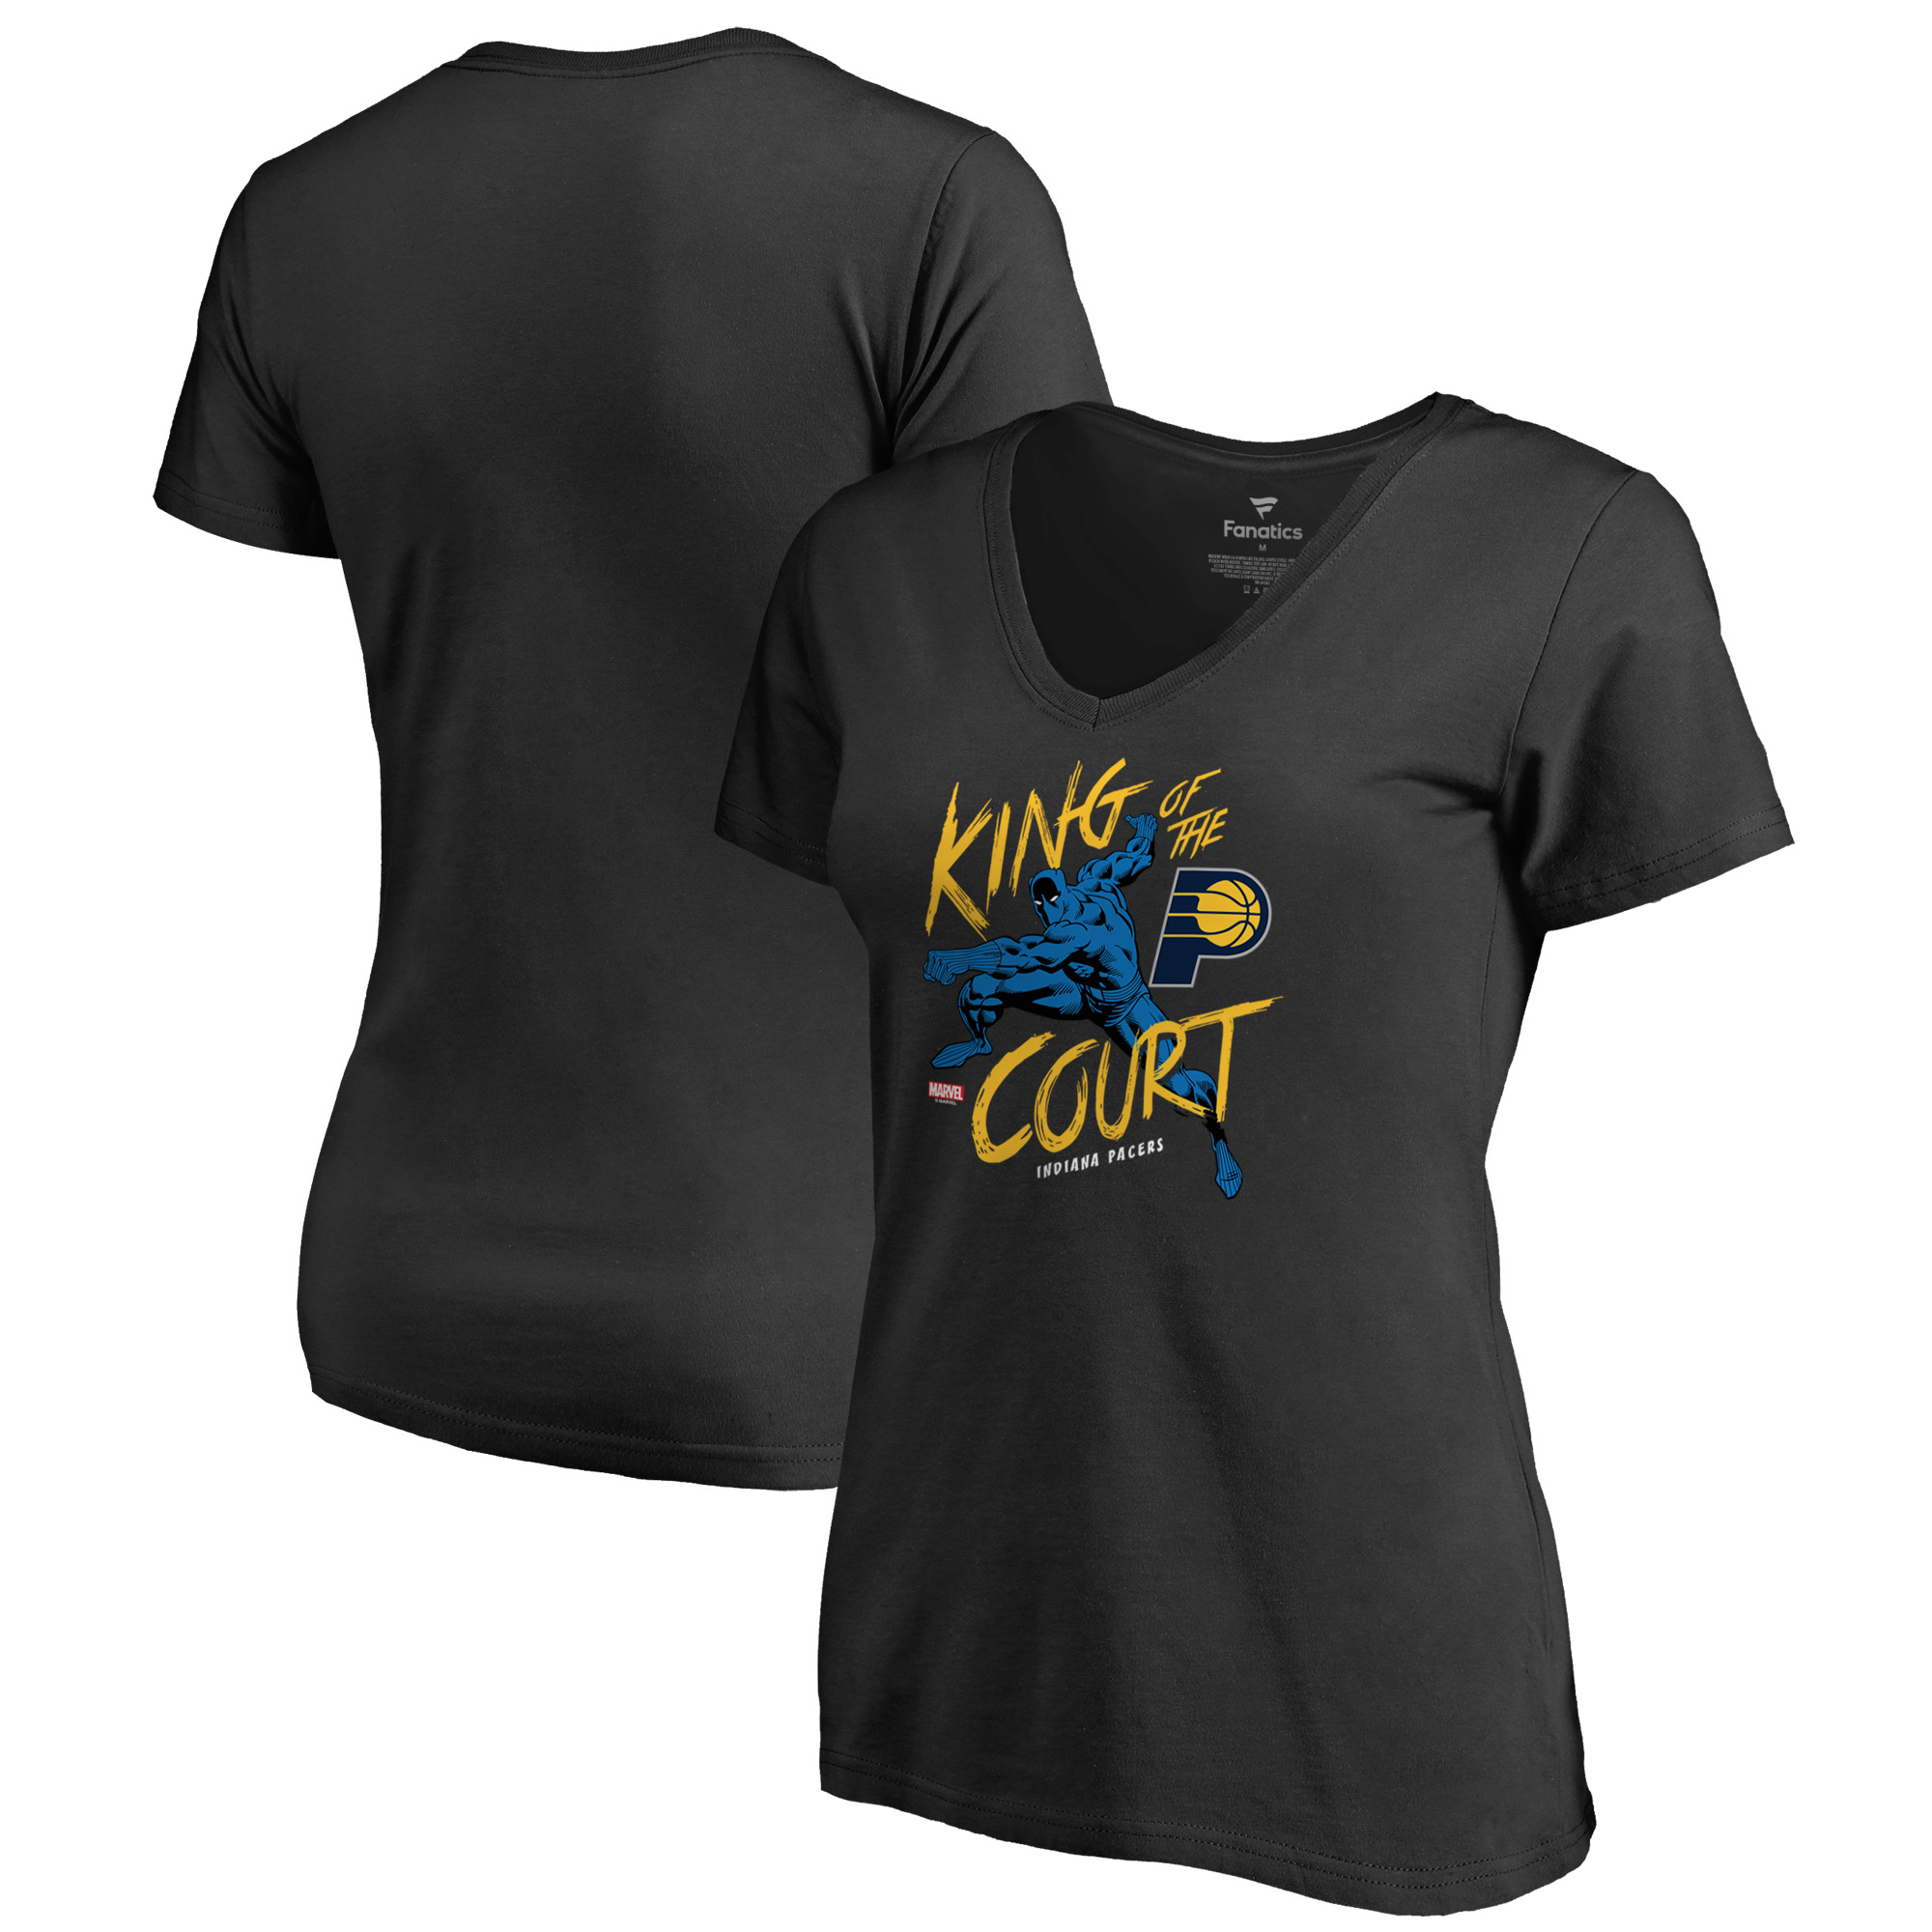 Indiana Pacers Fanatics Branded Women's Marvel Black Panther King of the Court V-Neck T-Shirt - Black